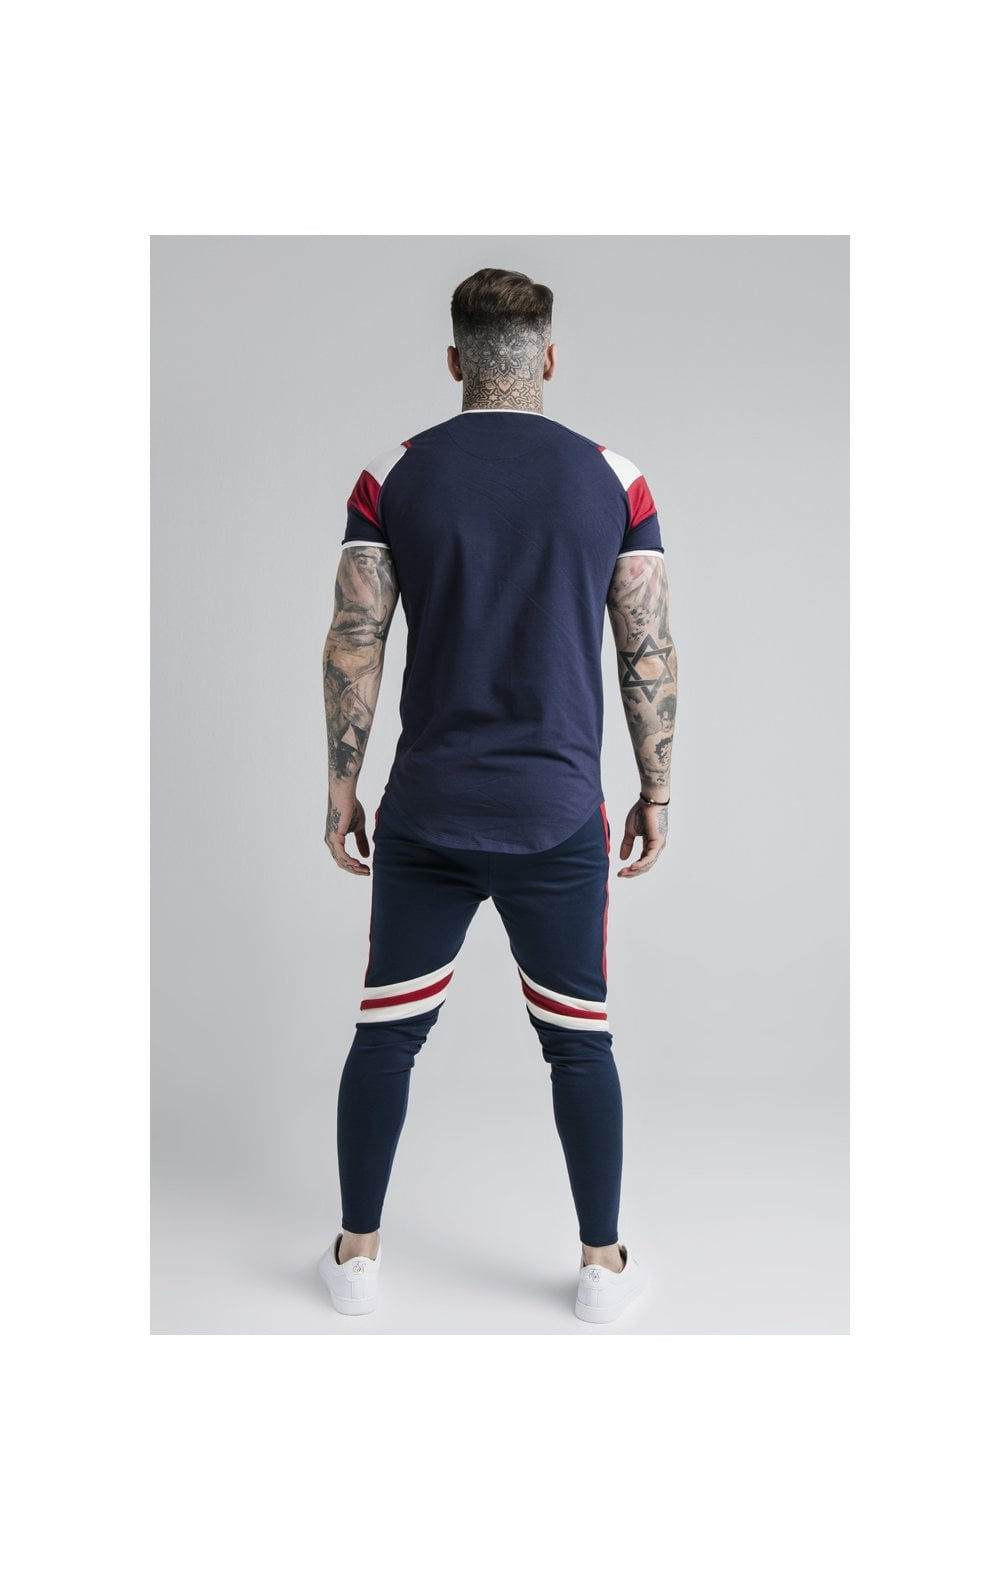 SikSilk Retro Panel Track Pants - Navy, Red & Off White (3)